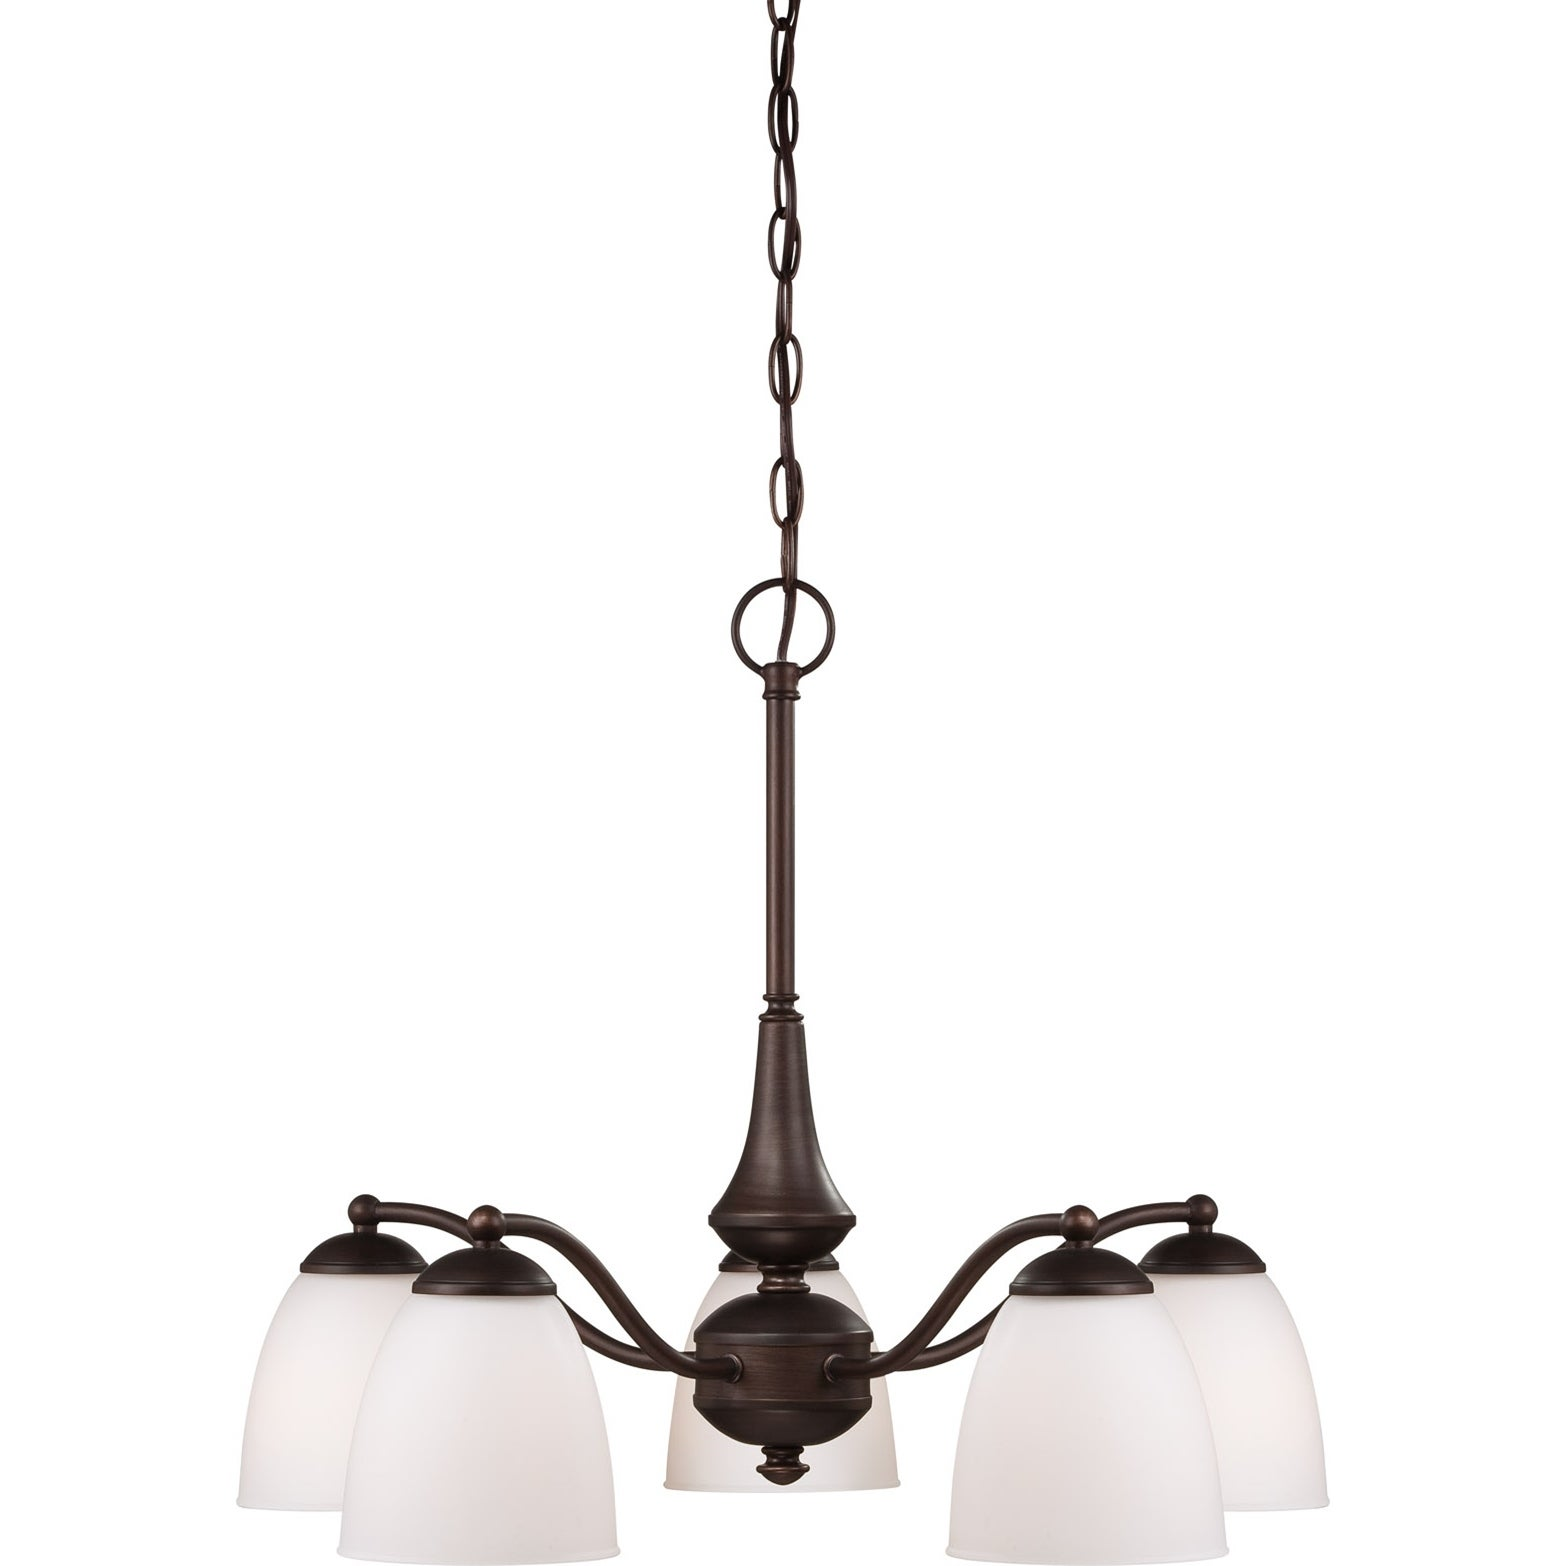 Nuvo Patton 5-light Prairie Bronze Fluorescent Chandelier